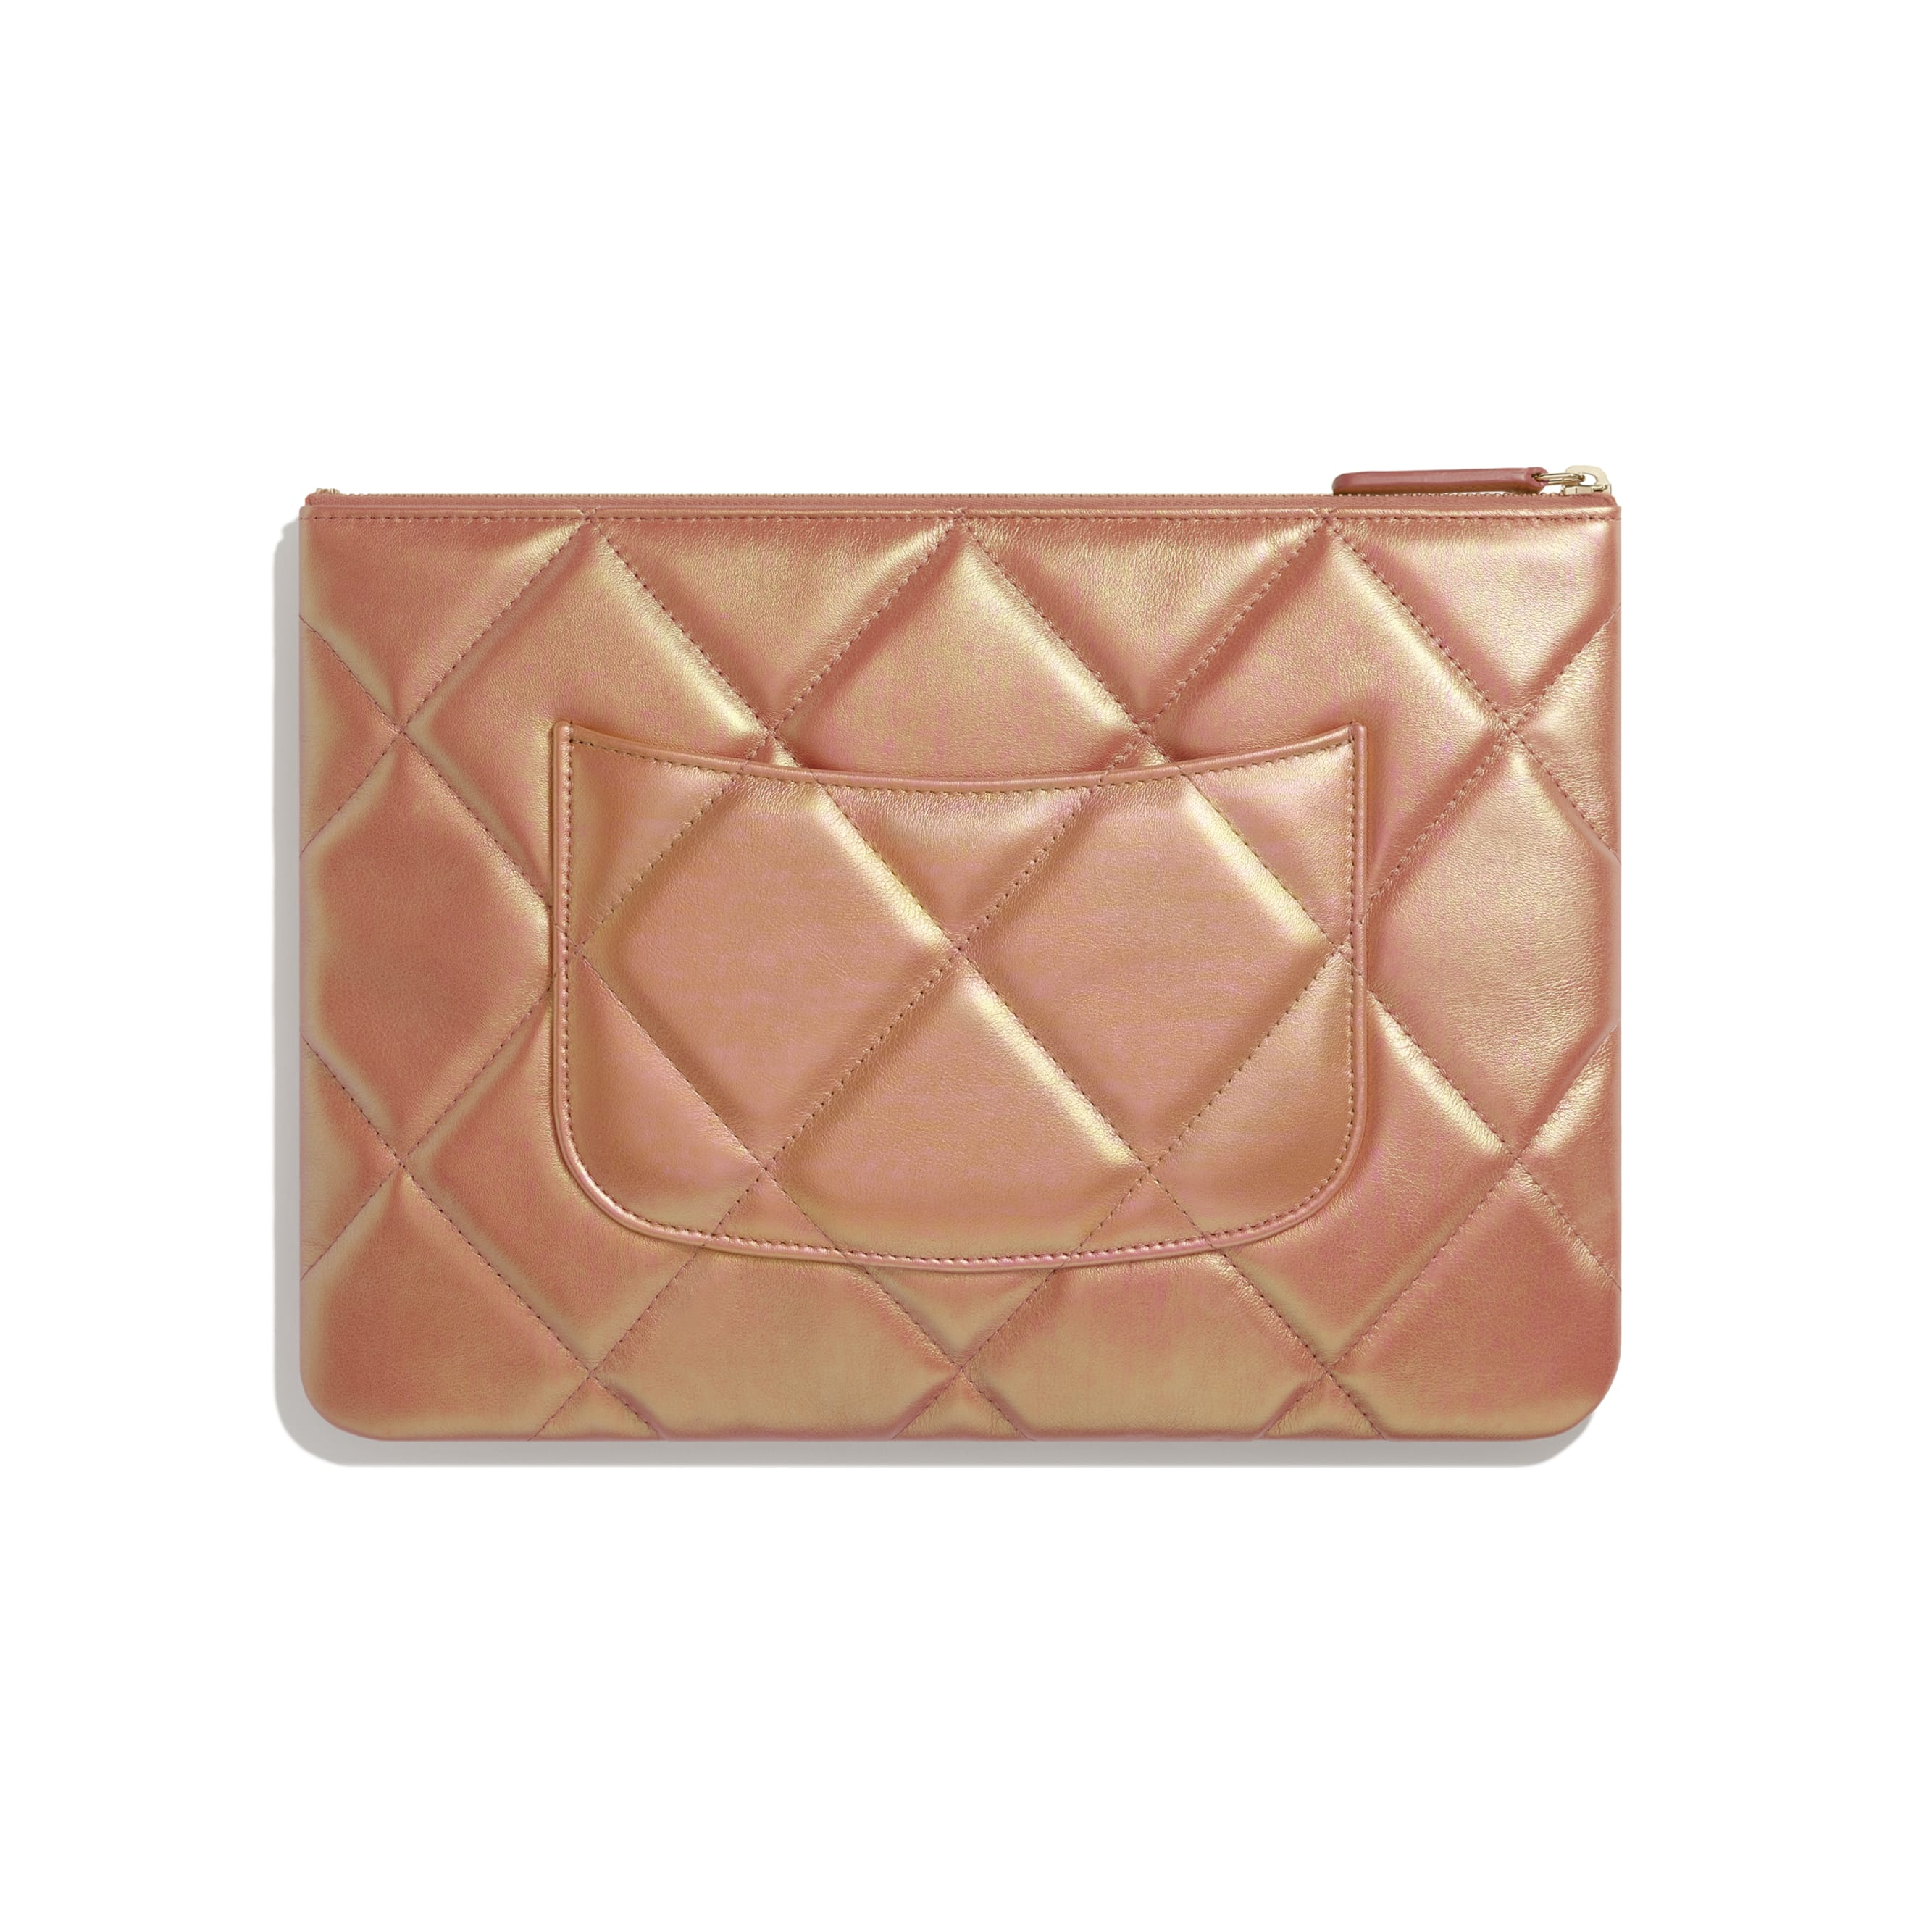 CHANEL 19 Pouch - Pink - Iridescent Calfskin, Gold-Tone, Silver-Tone & Ruthenium-Finish Metal - CHANEL - Alternative view - see standard sized version